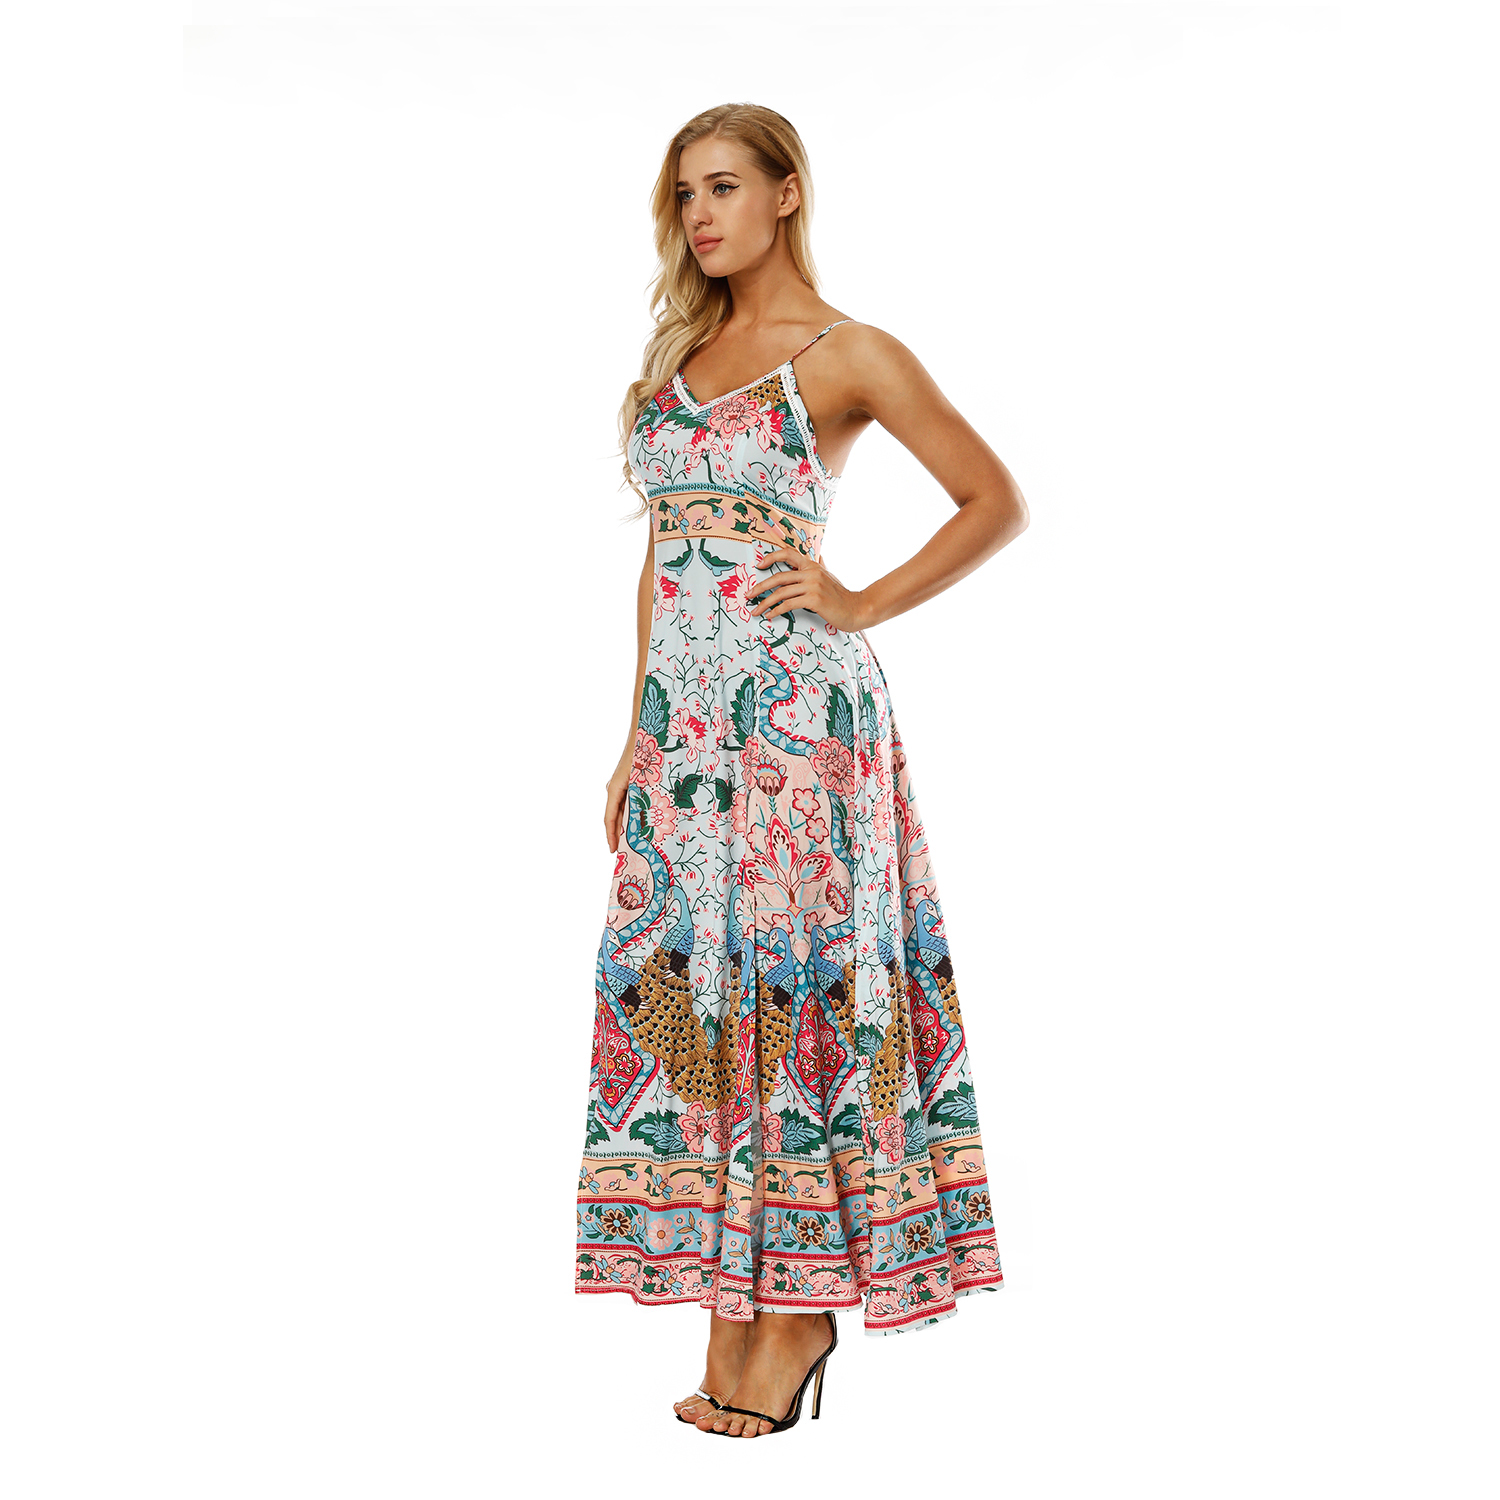 2018 Fashion hawaii Dress vestido Classic Print Maxi Summer Dress Beach  Clothes Long Beach Bohemian Sexy Ladies Summer plus size-in Dresses from  Women s ... a16b2344d0a2